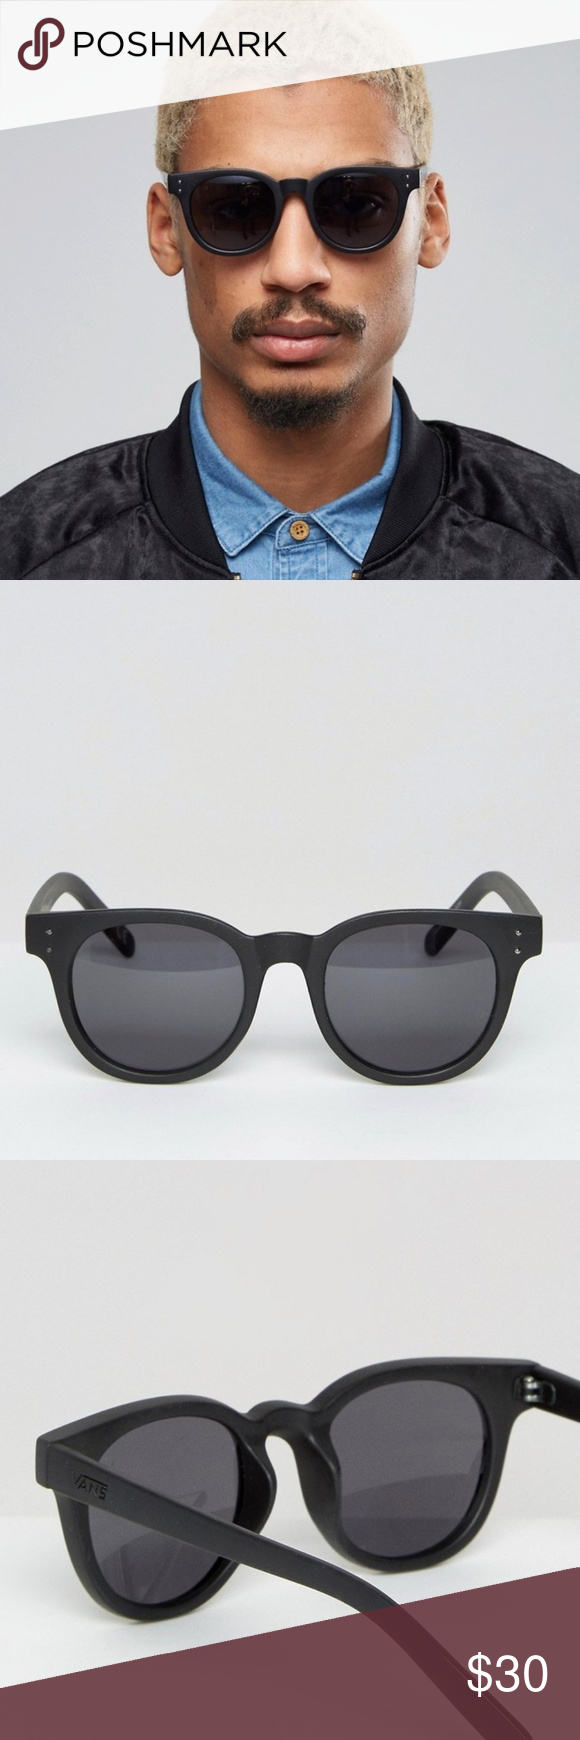 3a5f1a41d5 Vans Welborn Sunglasses In Black V5yoblk New Vans Welborn Sunglasses In  Black V5yoblk Vans Accessories Sunglasses